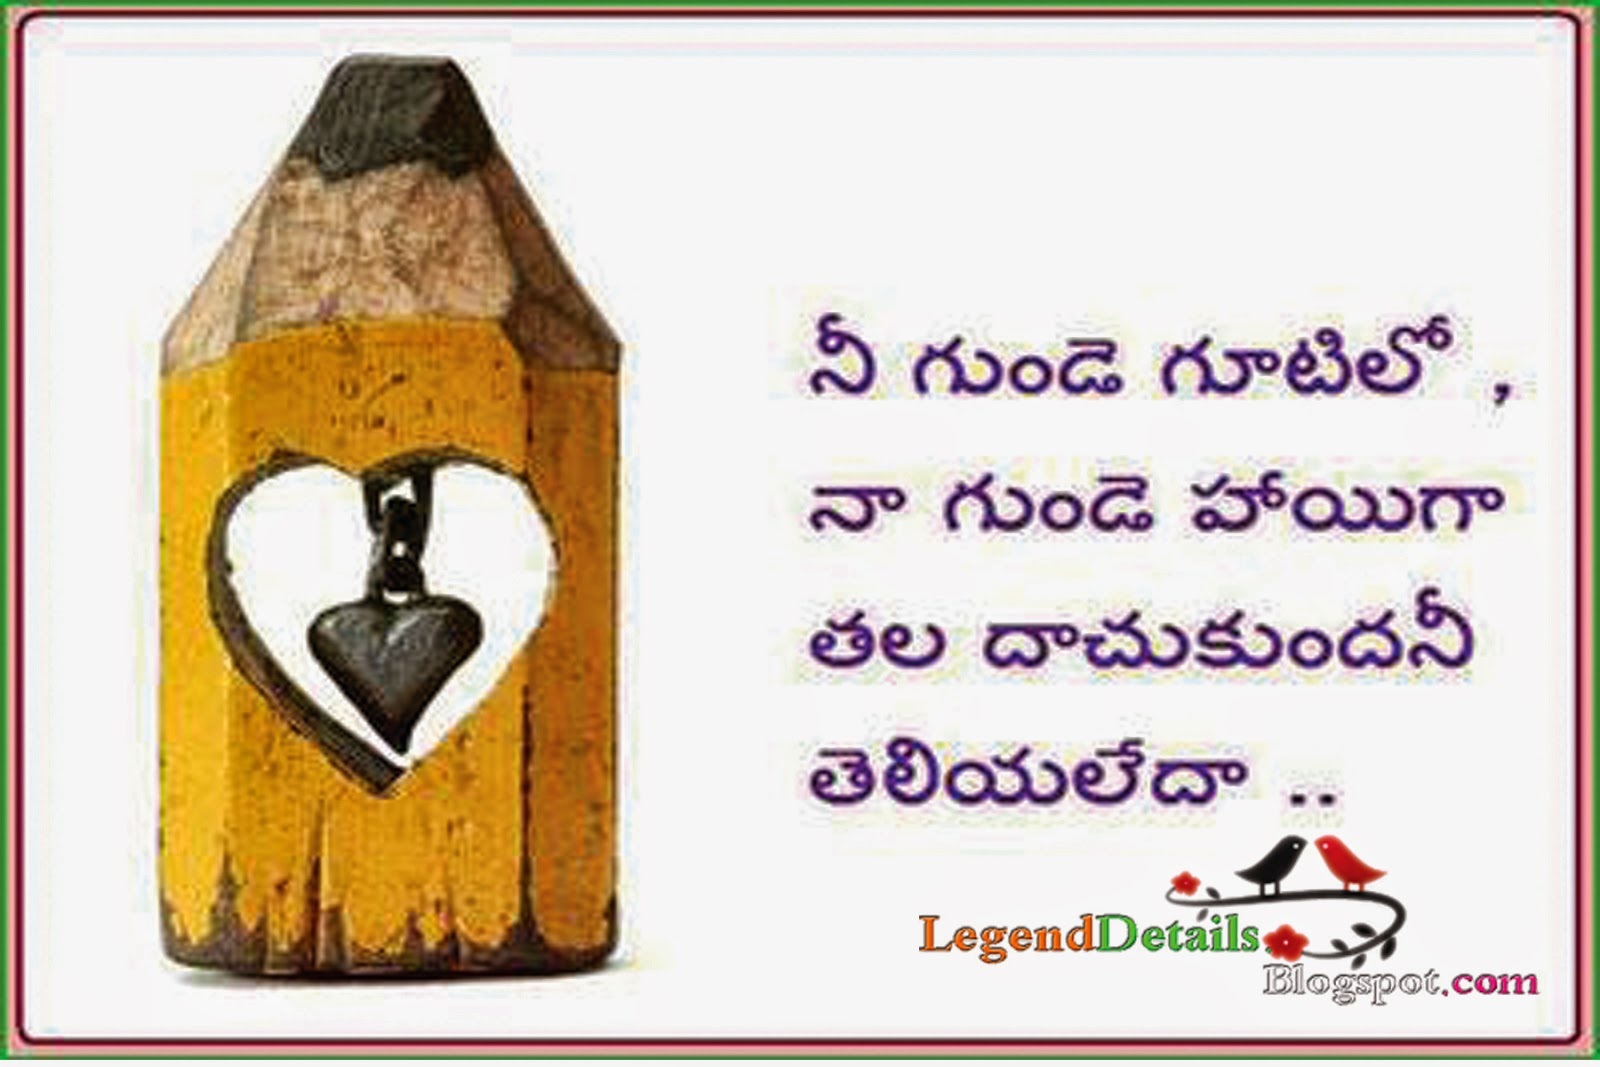 Telugu Love Quotes Enchanting Famous New Telugu Love Quotes  Hd Wallpapers  Legendary Quotes